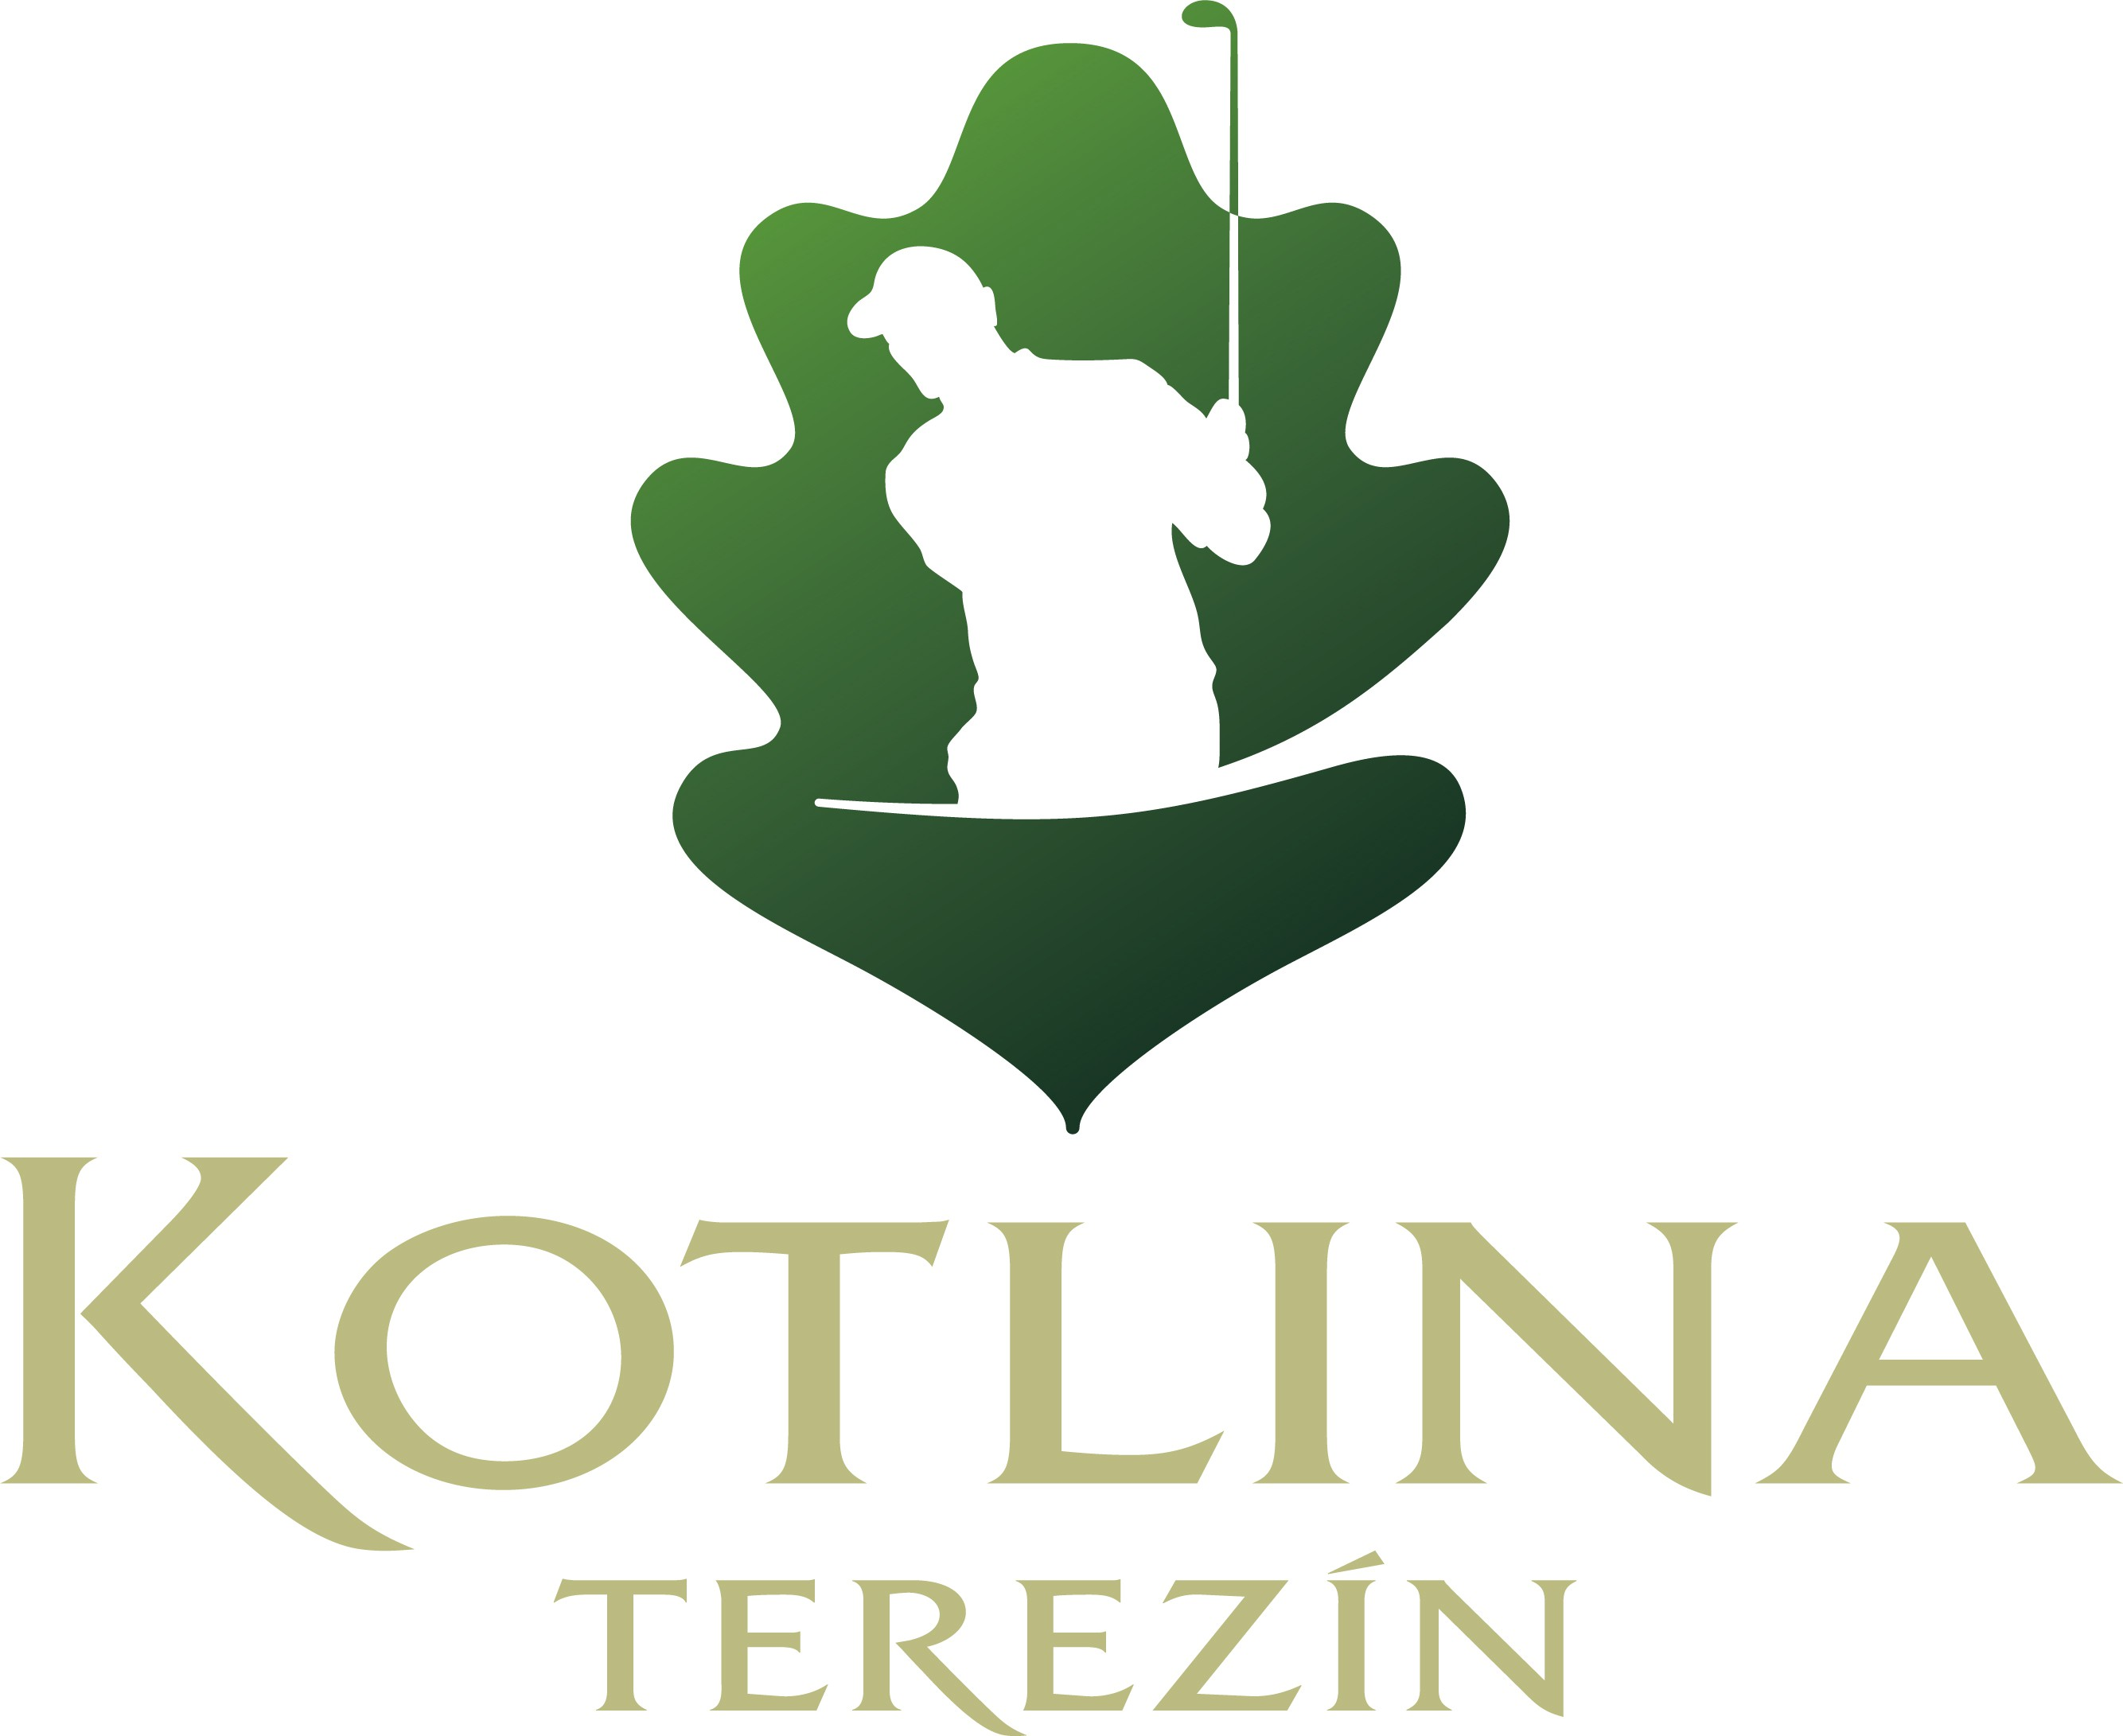 kotlina_terezin_big.jpg